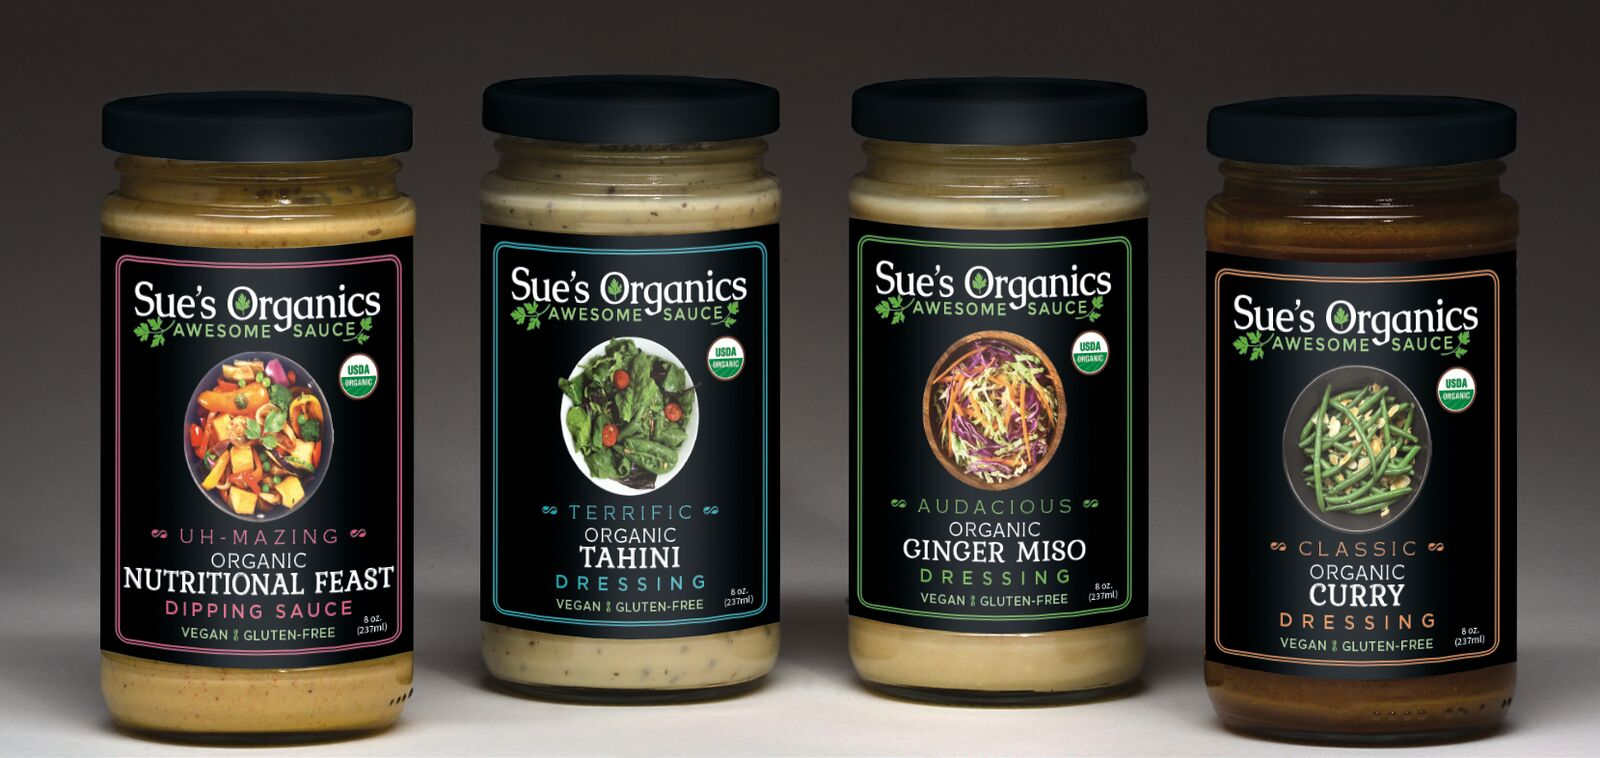 Sue's Organics to Debut 'Awesome Sauce' Line at Fancy Food Show